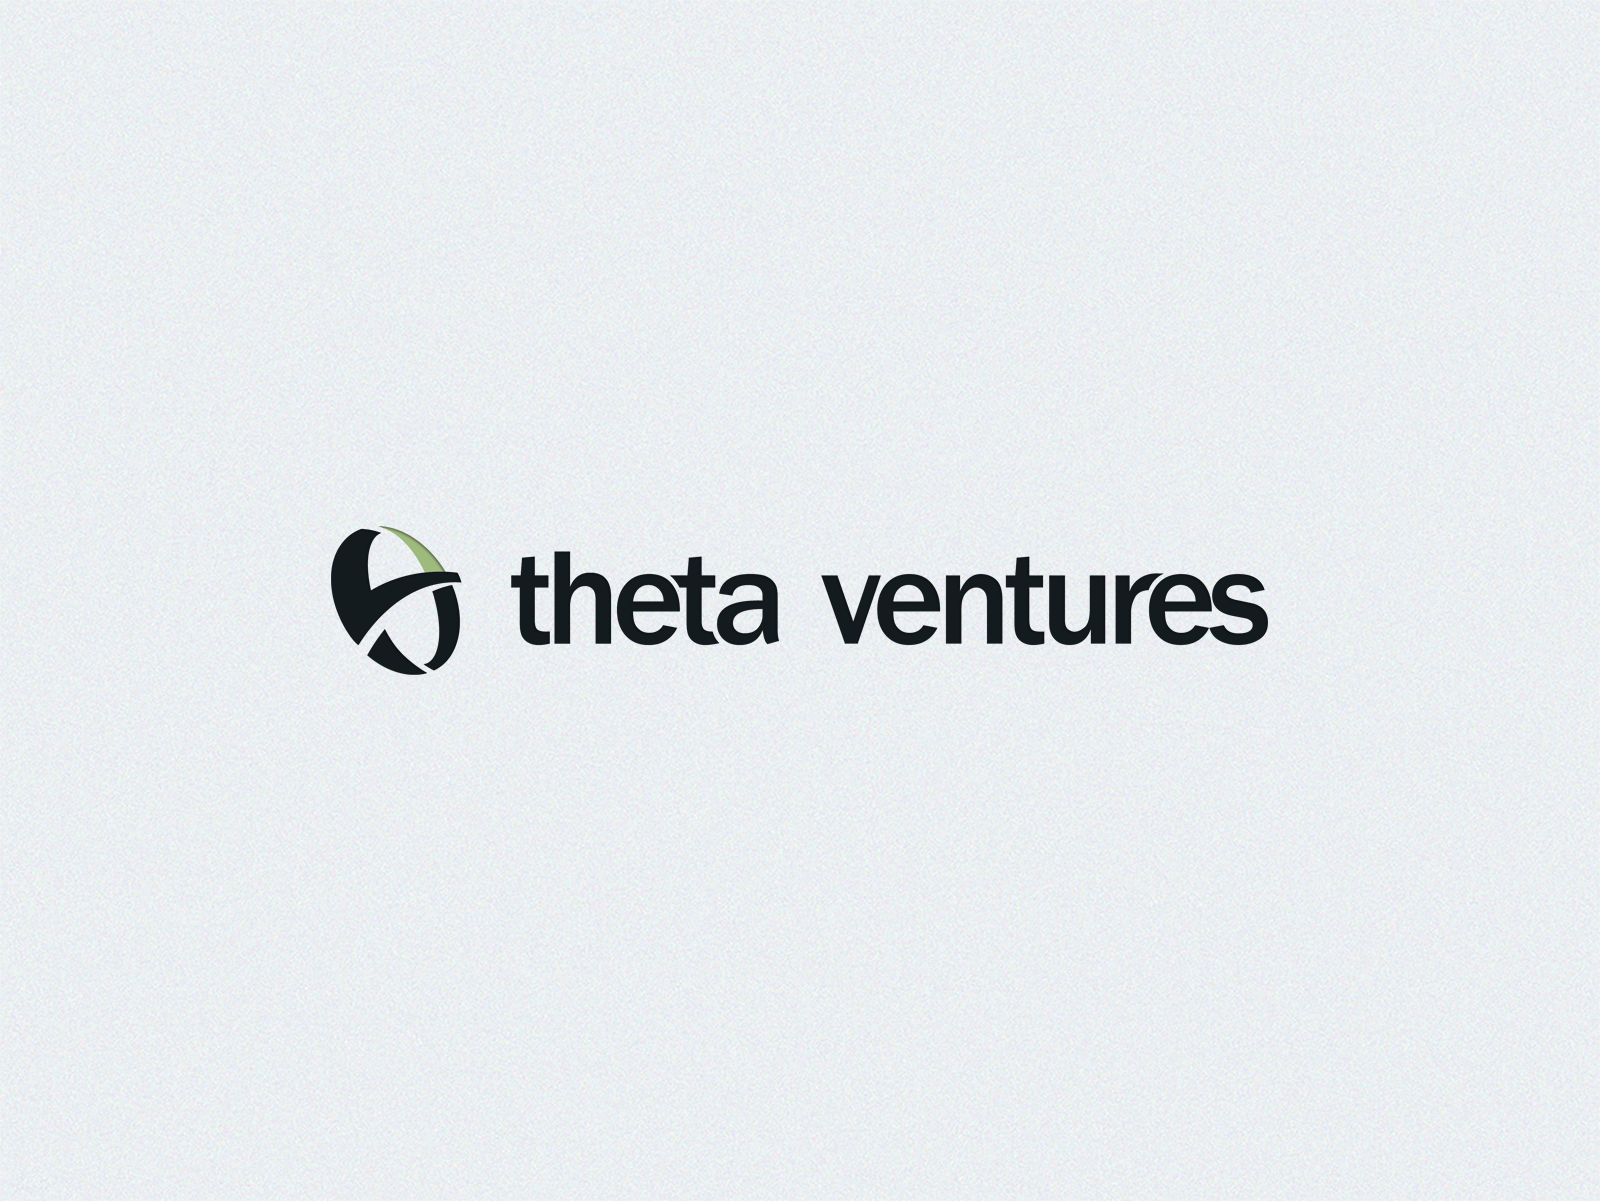 New logo wanted for Theta Ventures